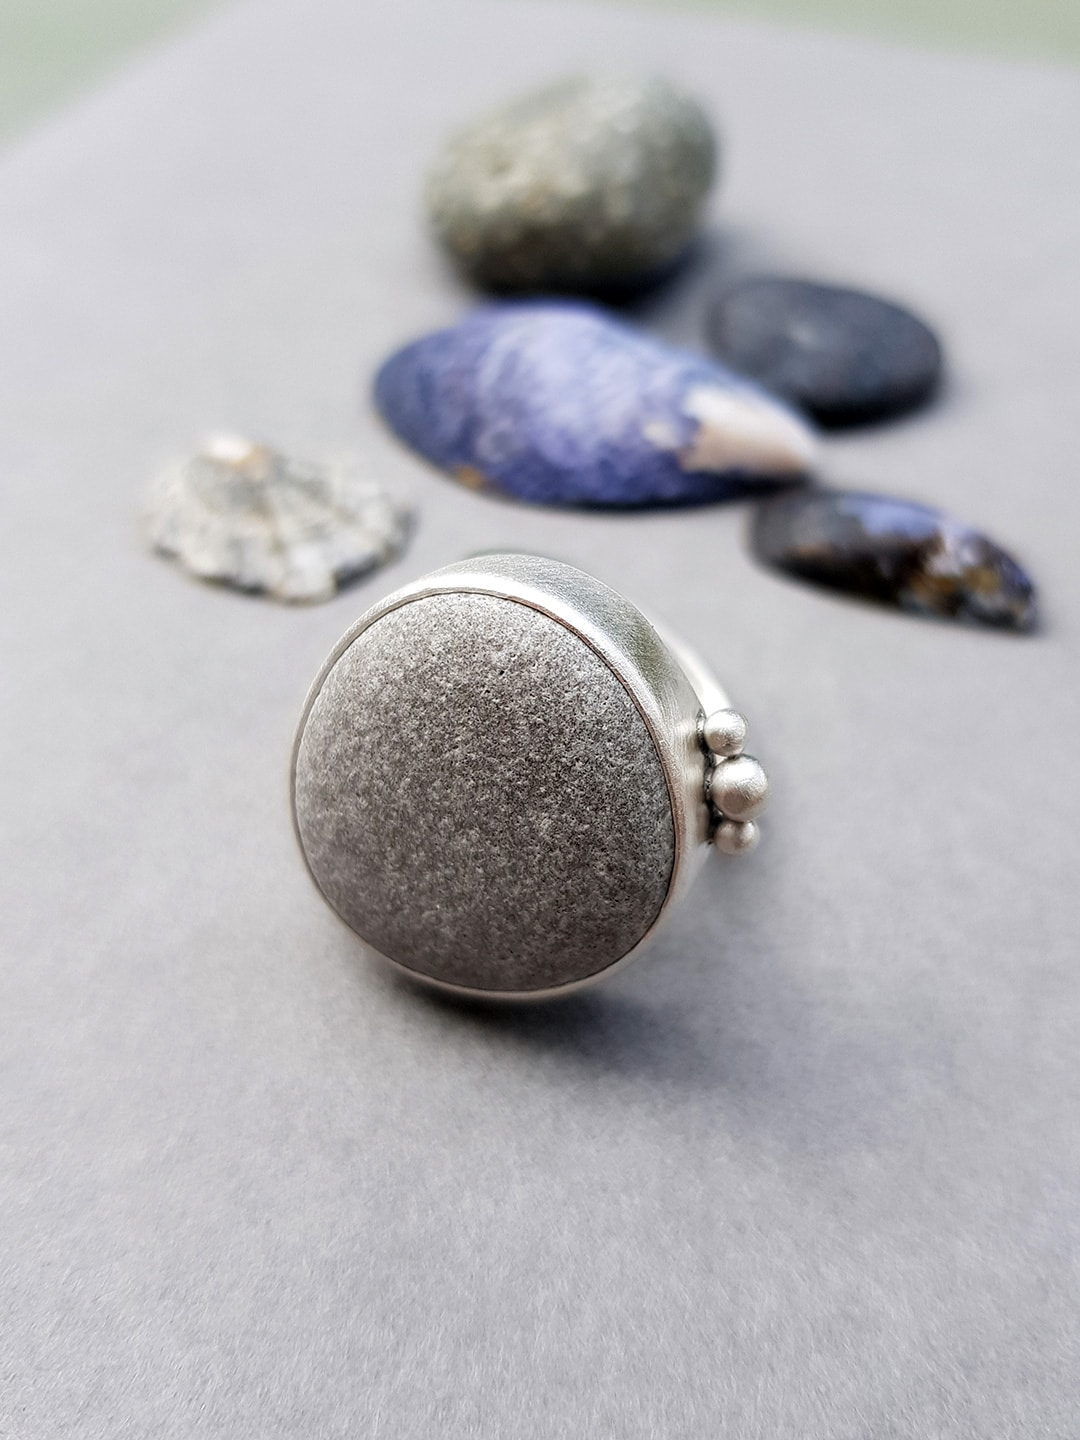 Beach pebble and brushed sterling silver ring